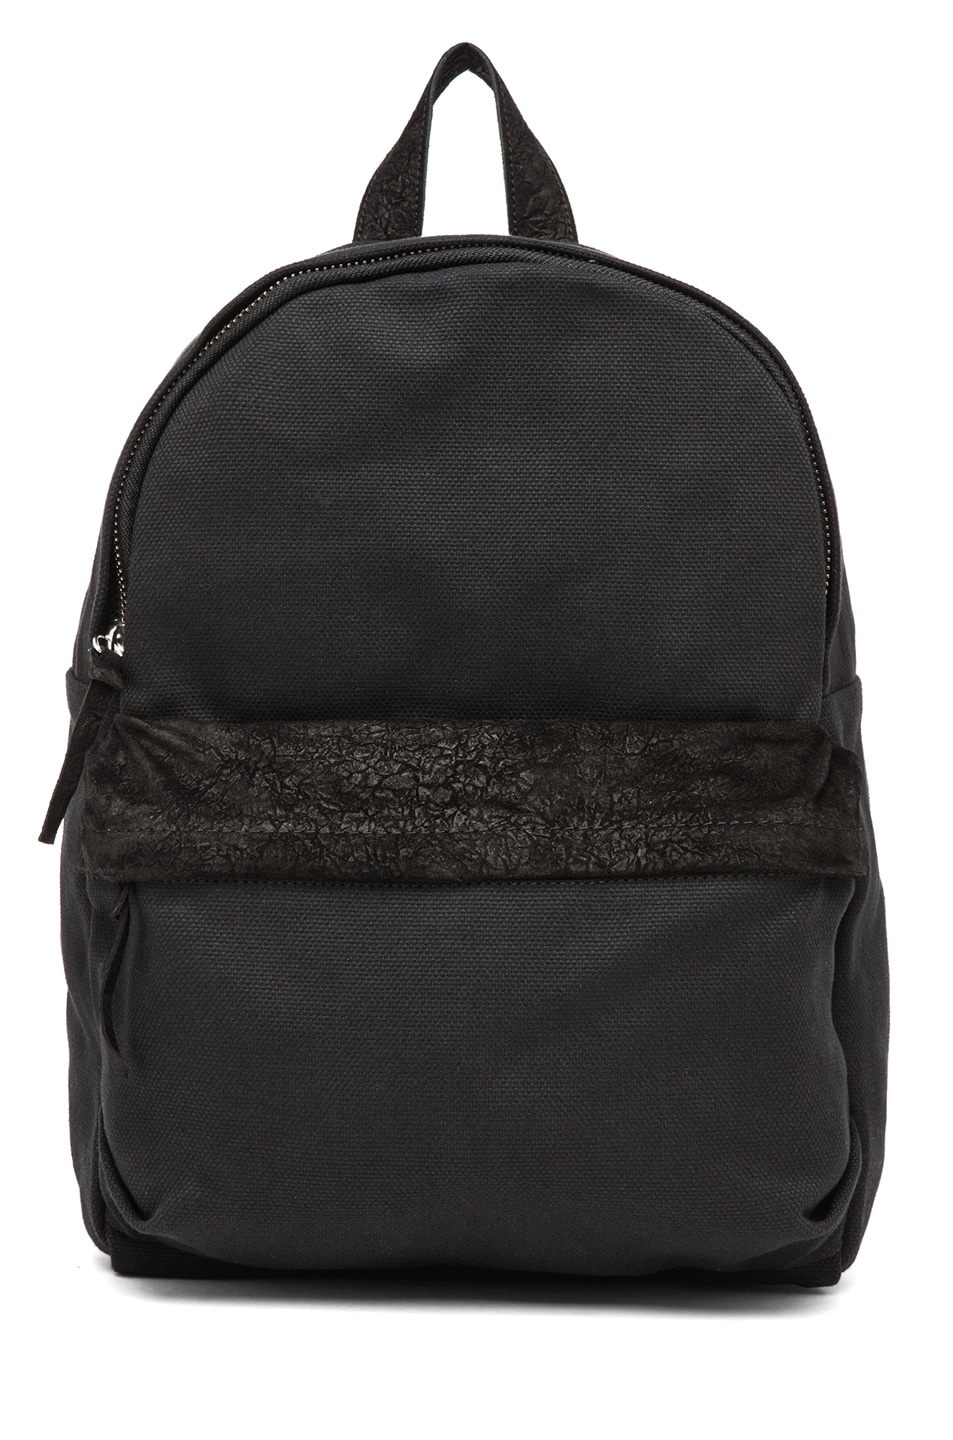 Image 1 of SILENT DAMIR DOMA Broto Leather Backpack in Black